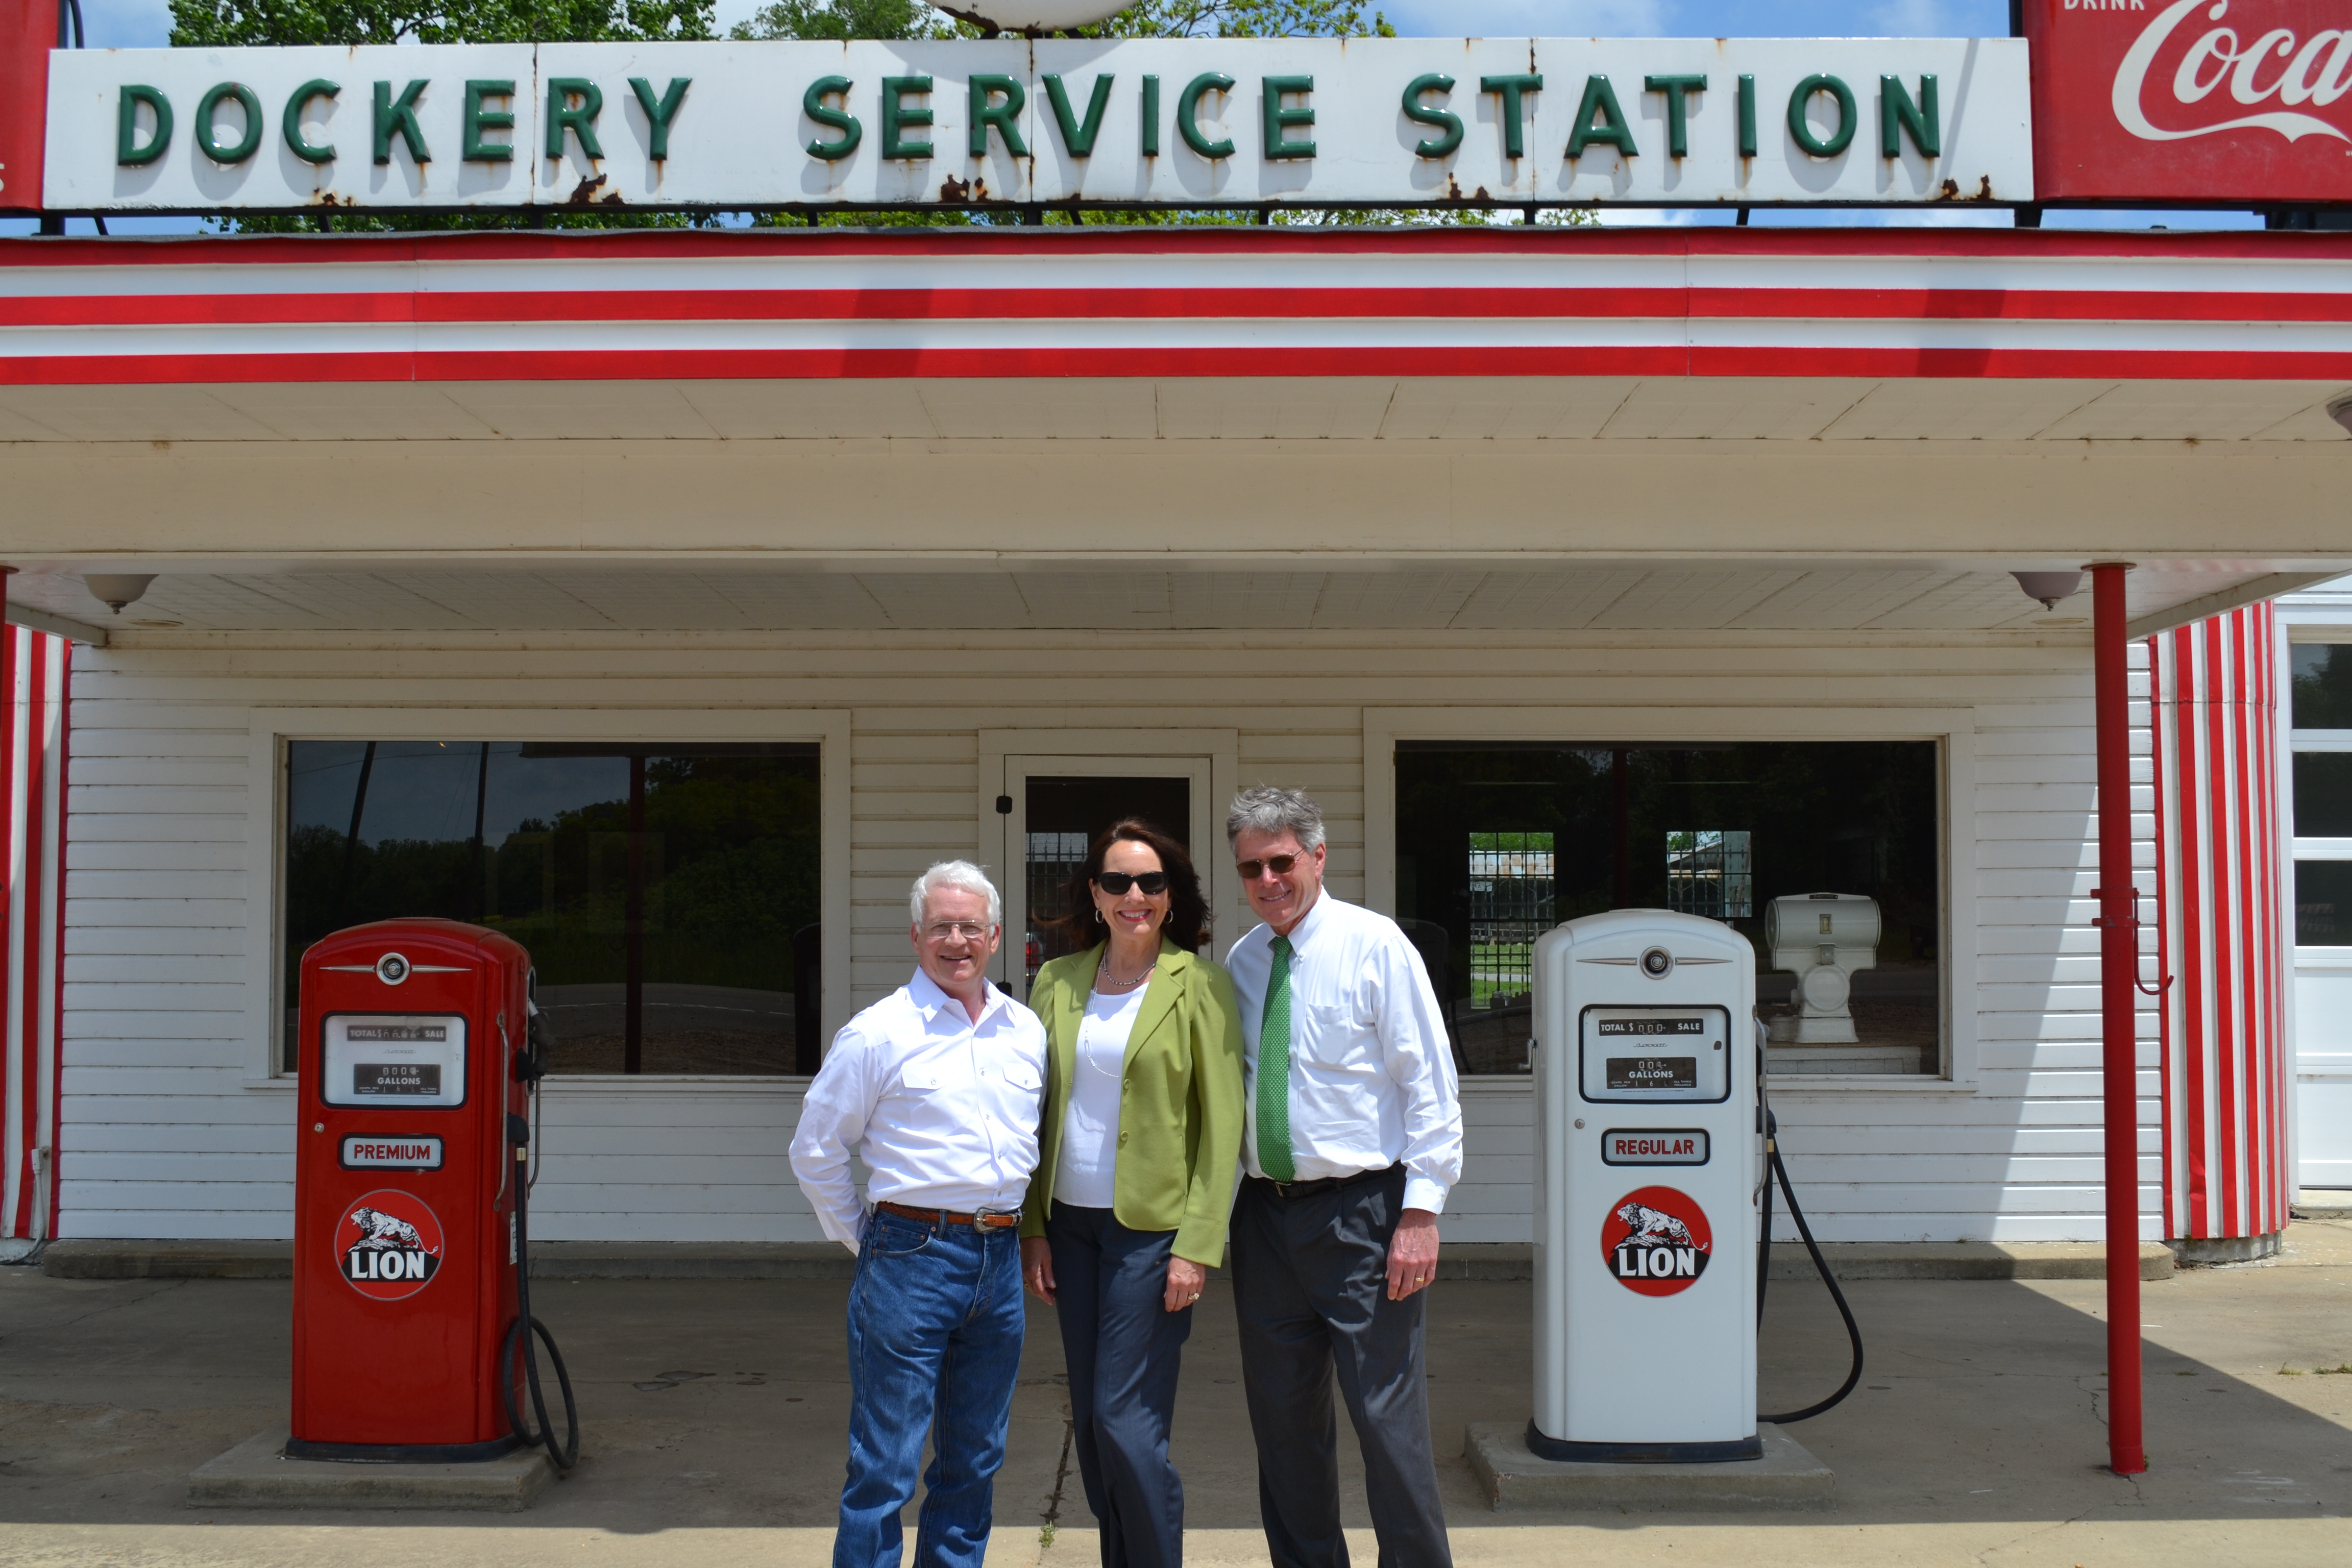 From left, Delta State Professor Emeritus of Art and Coordinator for the Dockery Farms Foundation Bill Lester, Delta State First Lady Nancy LaForge and Delta State President William N. LaForge in front of the history Dockery Service Station.